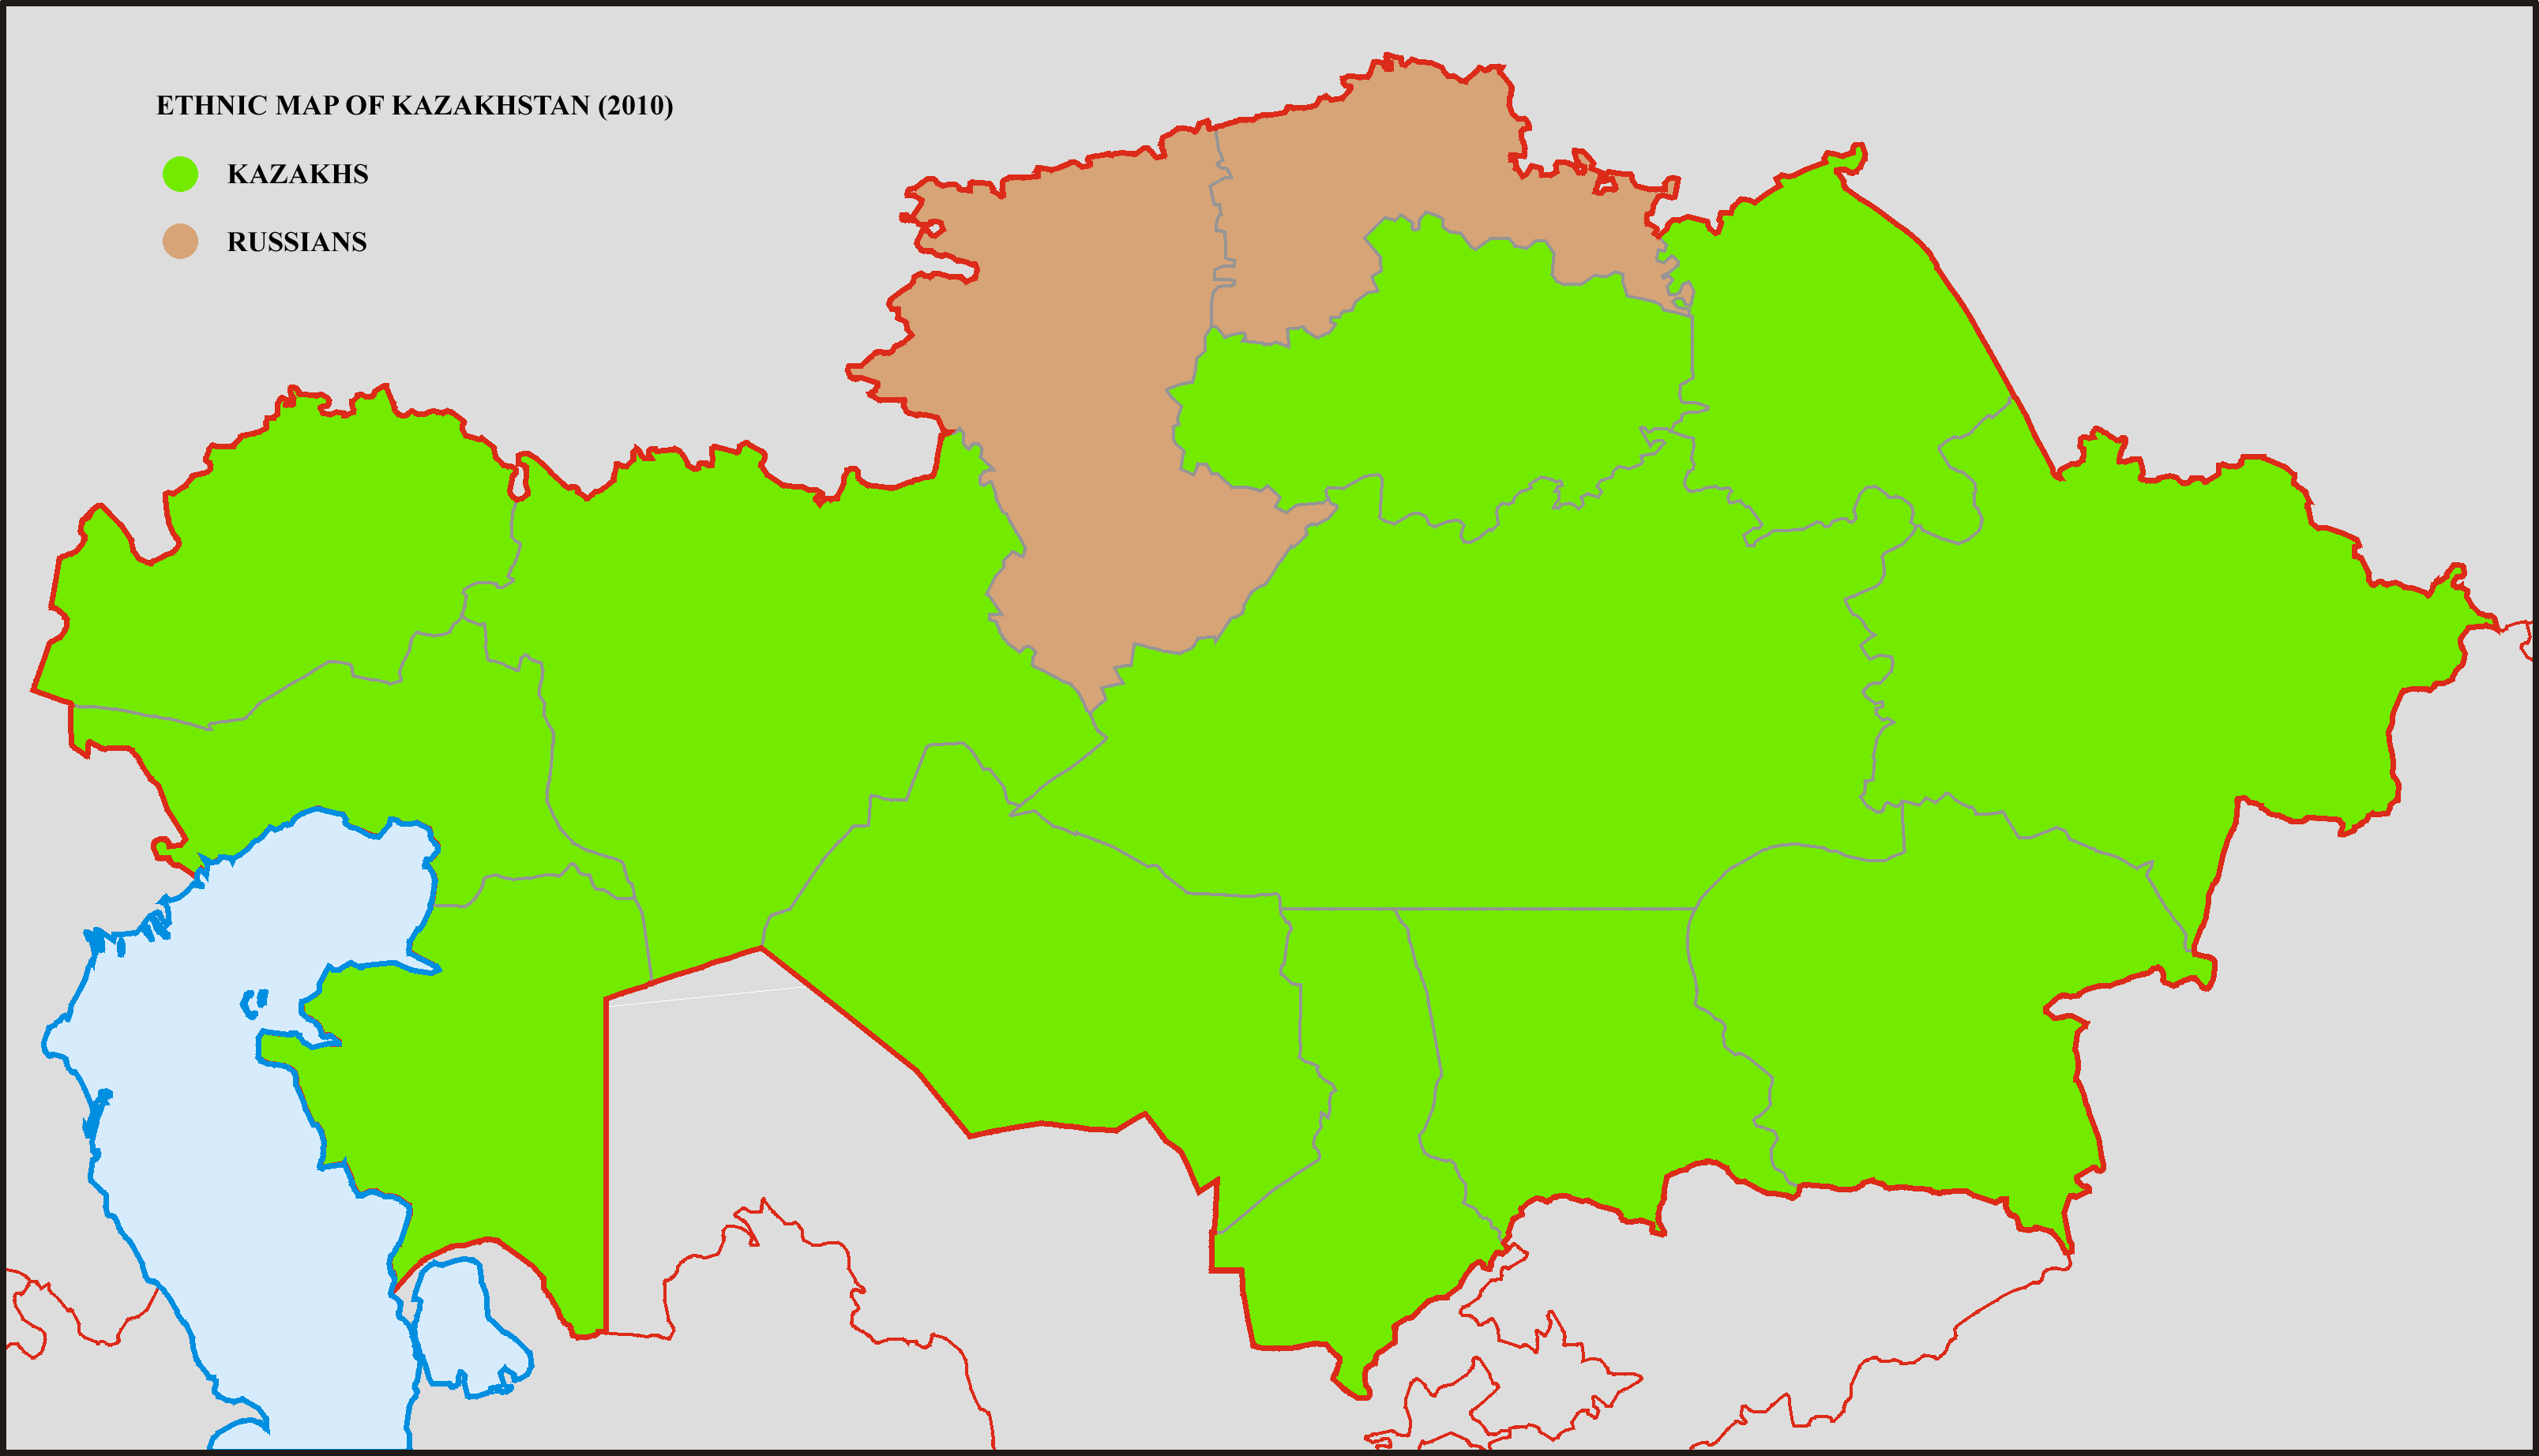 File:Ethnic map of Kazakhstan 2010.png - Wikimedia Commons